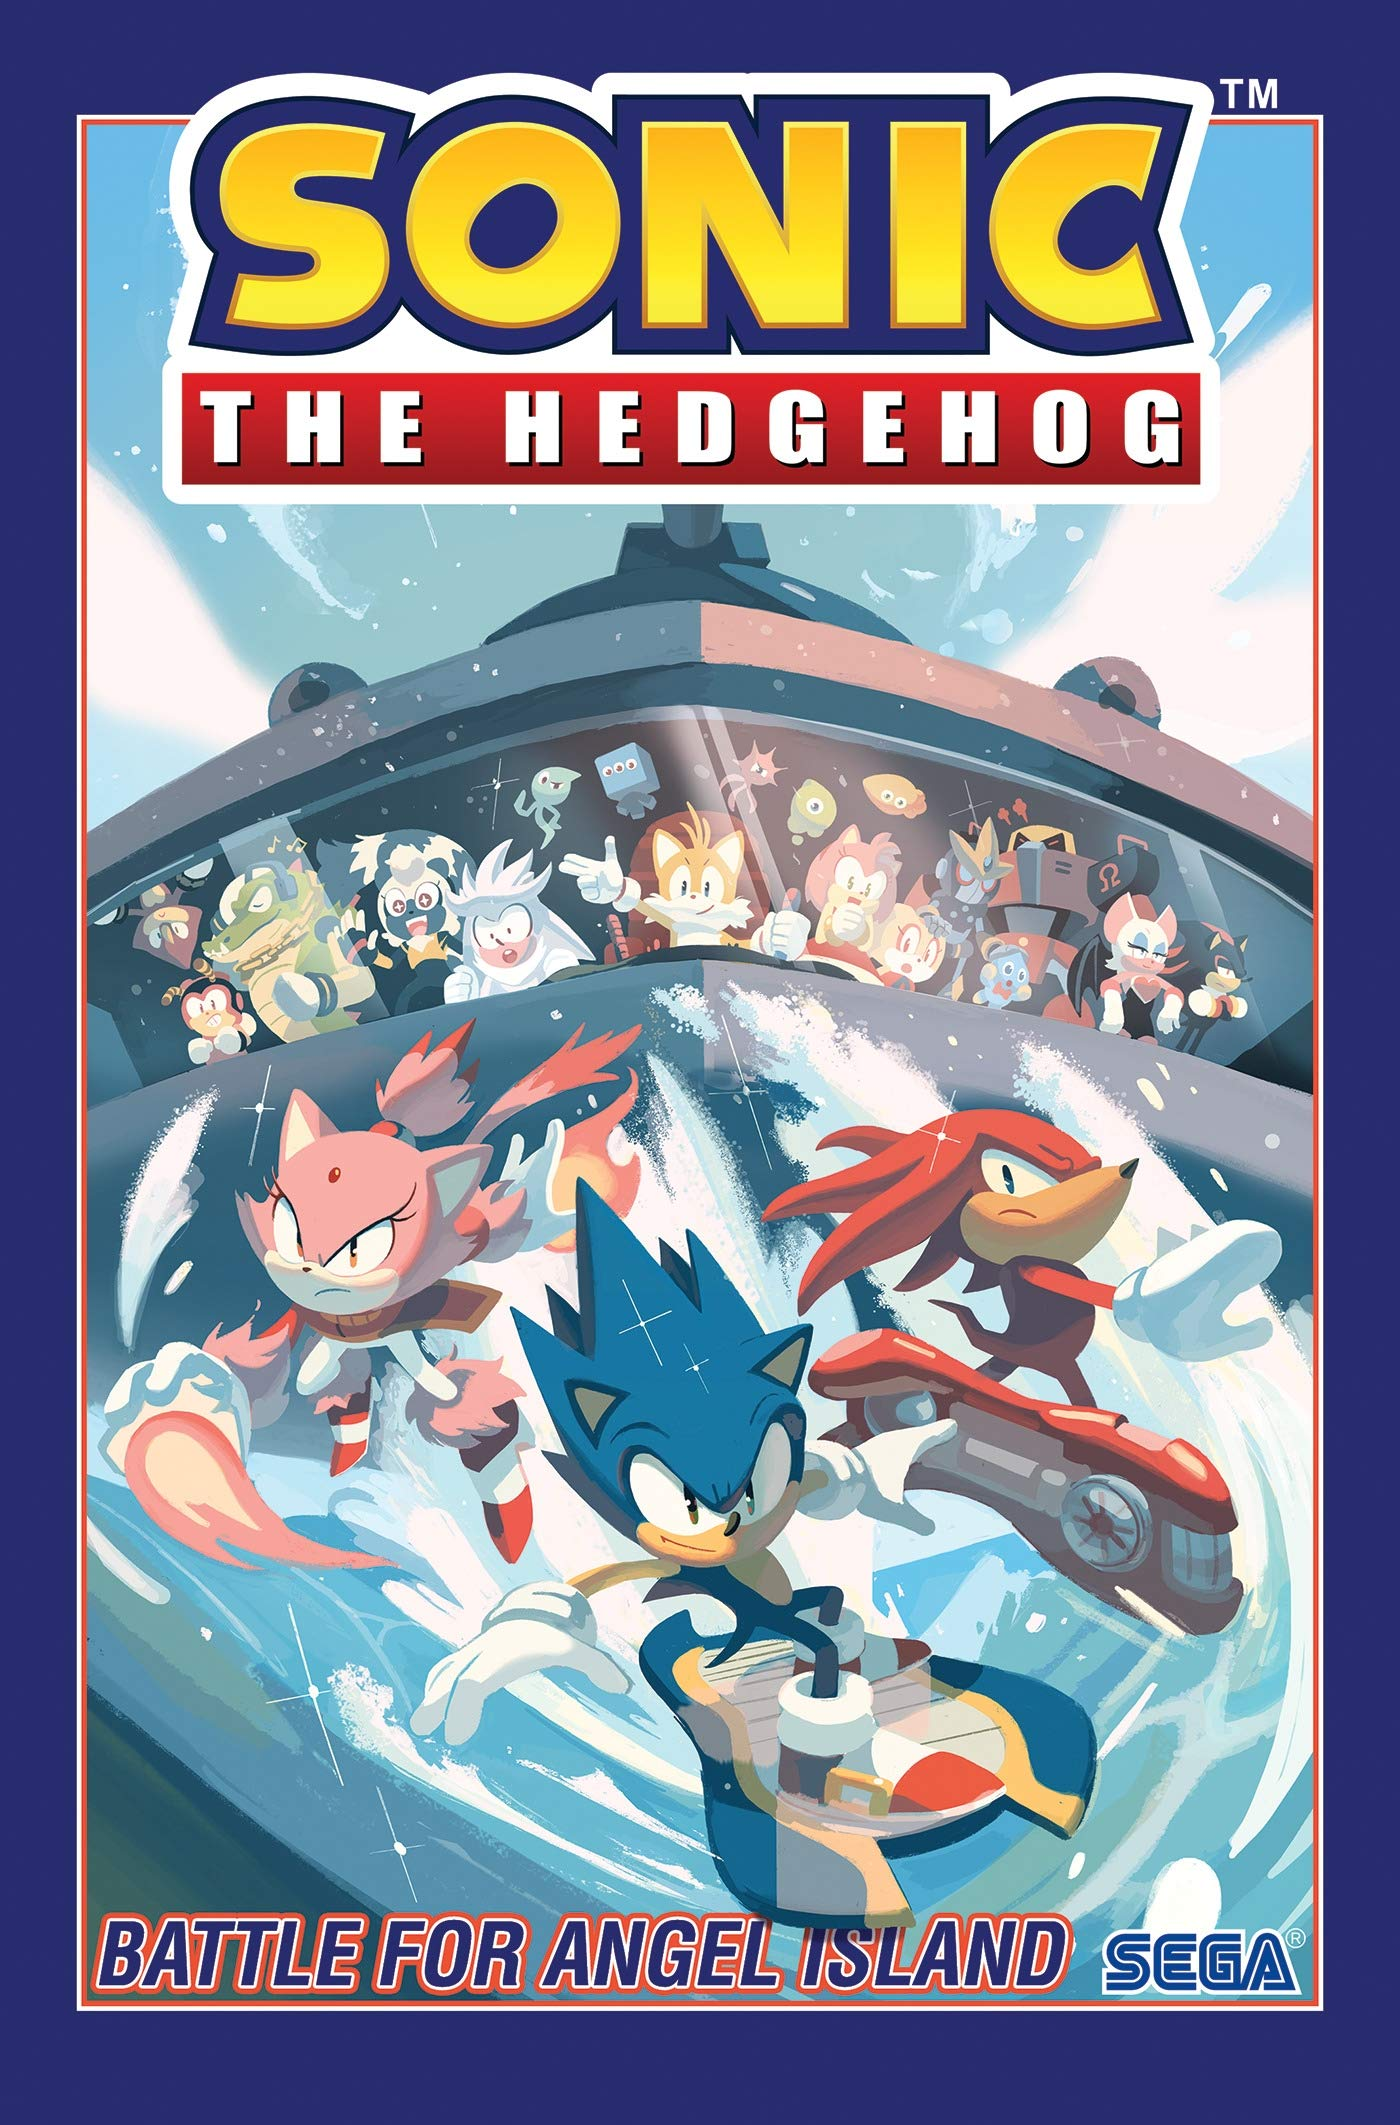 Amazon Com Sonic The Hedgehog Vol 3 Battle For Angel Island 9781684054985 Flynn Ian Yardley Tracy Stanley Evan Books